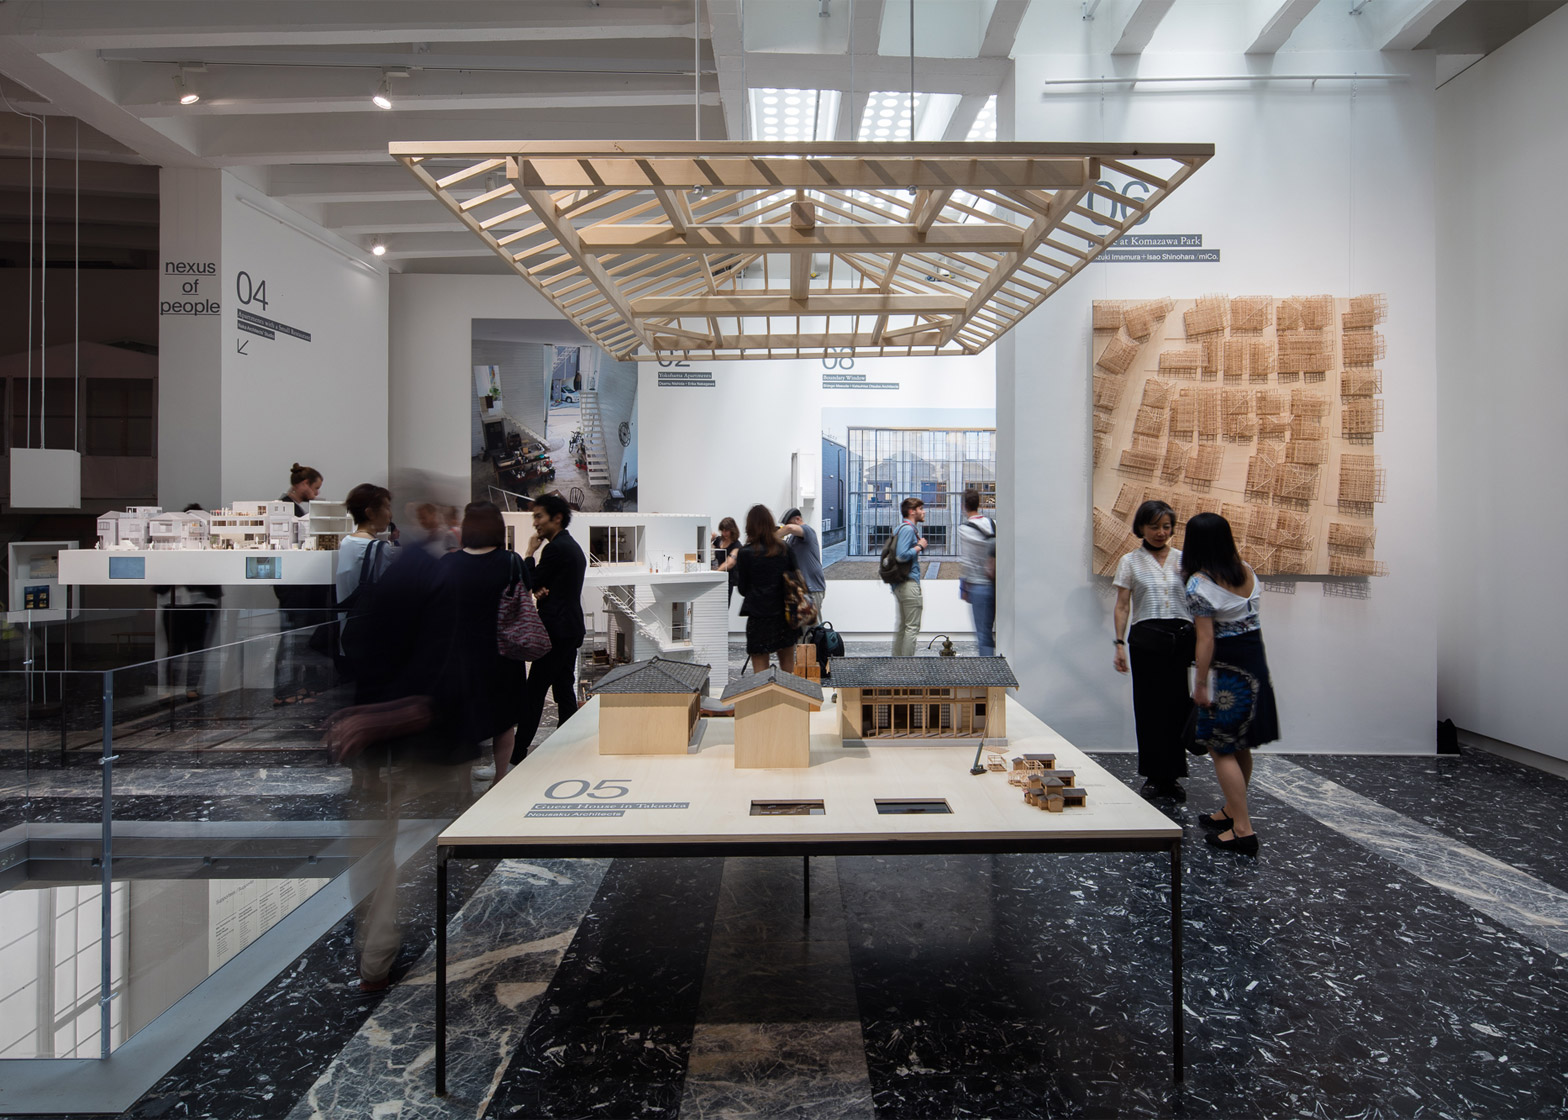 Japan pavilion at the Venice Architecture Biennale 2016